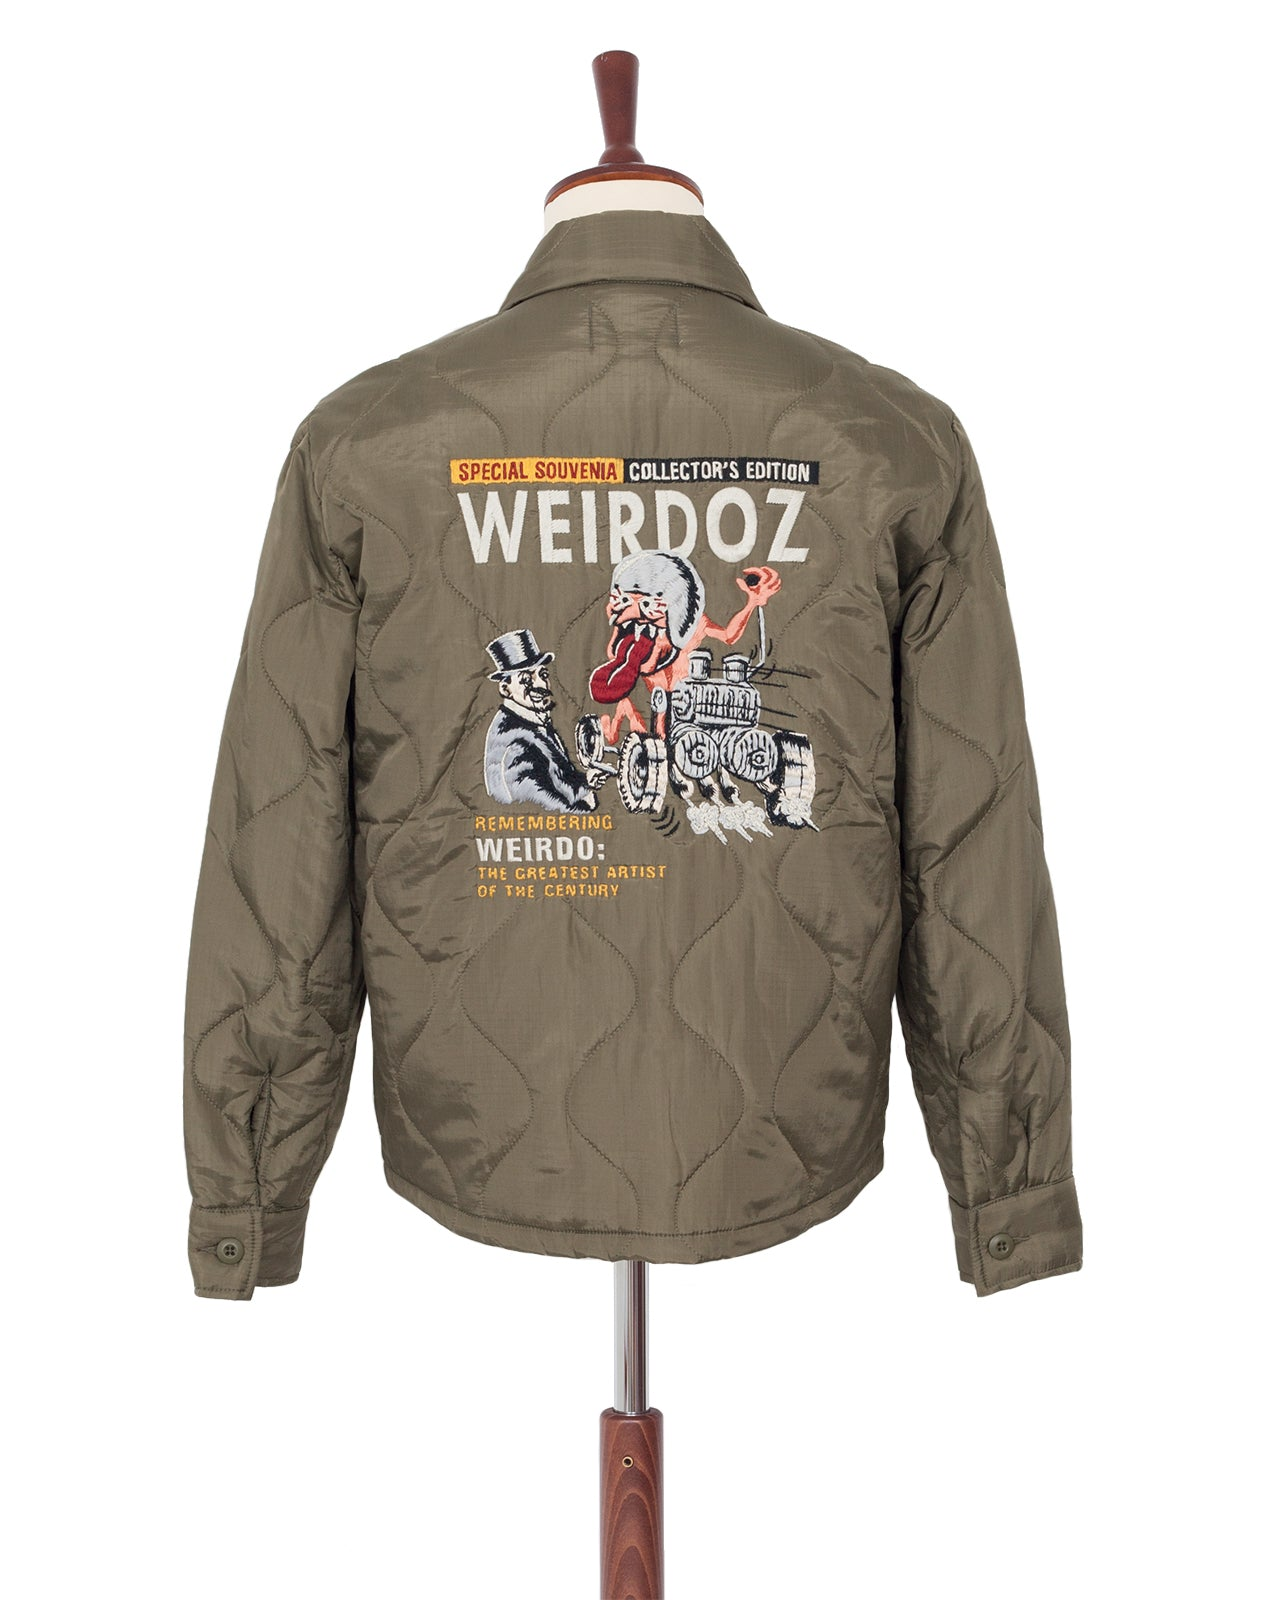 Weirdo Quilting Jacket, Weirdoz, Khaki